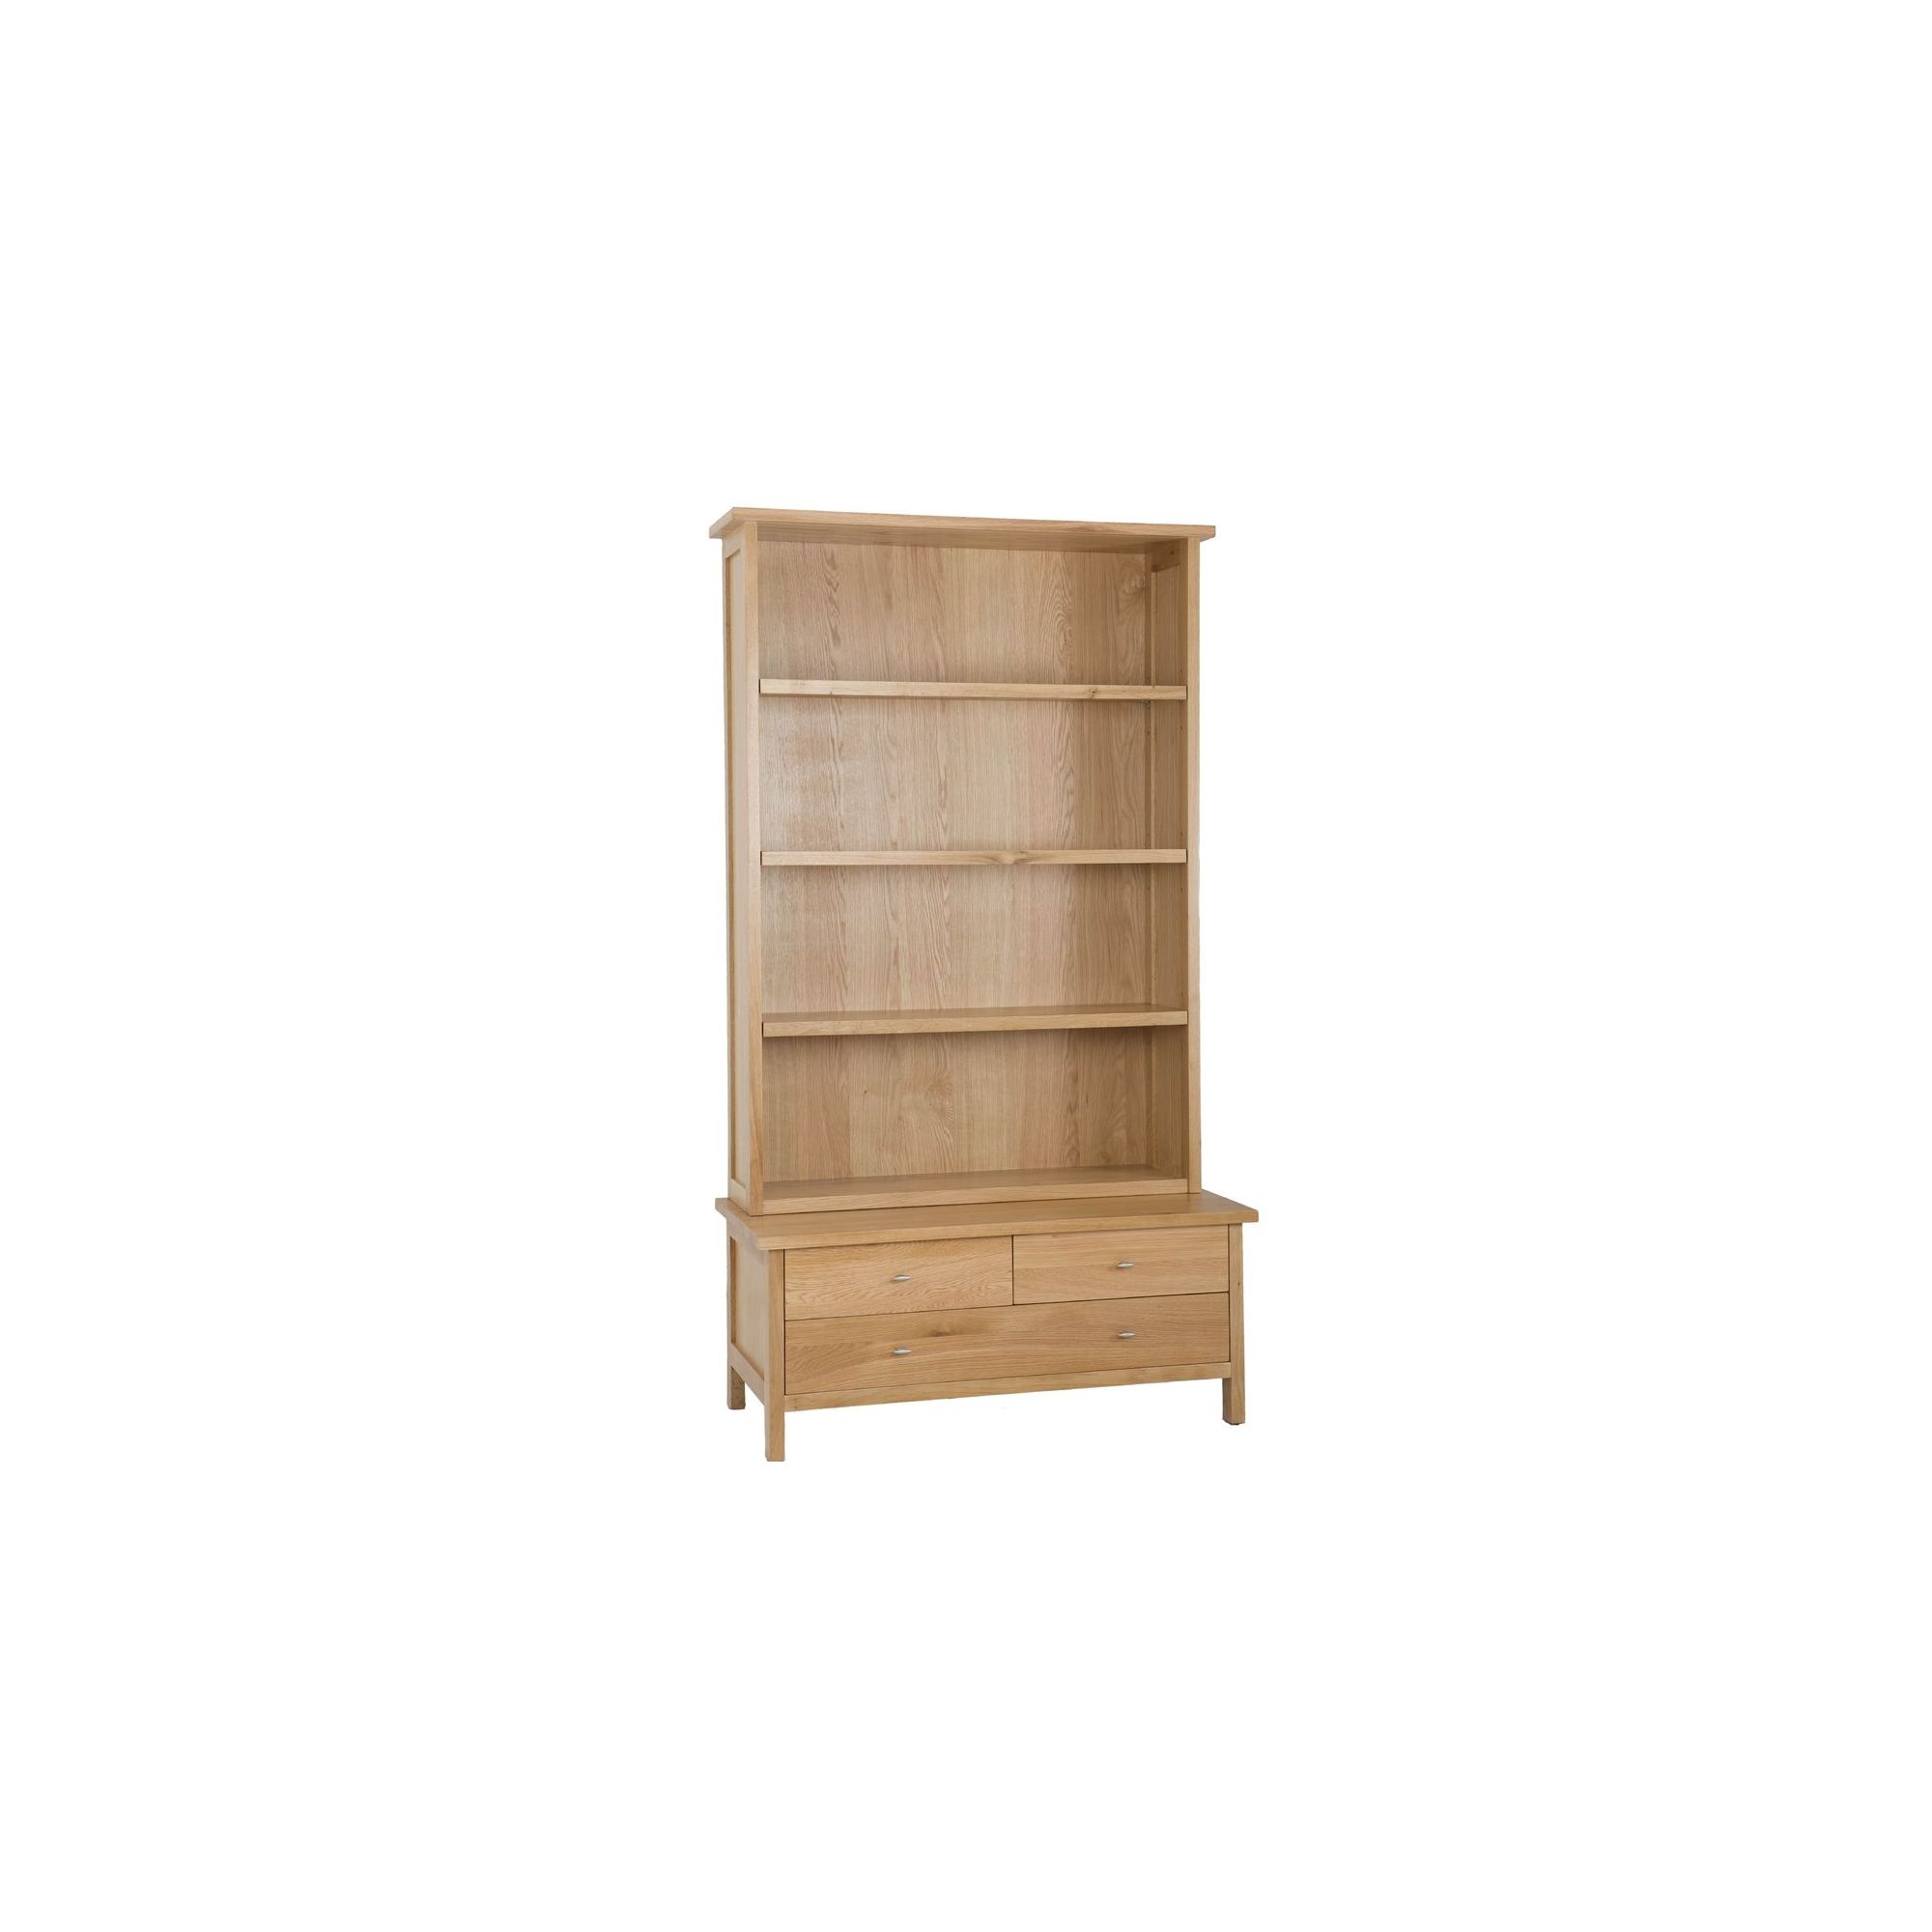 Oakinsen Barry Bookcase at Tesco Direct